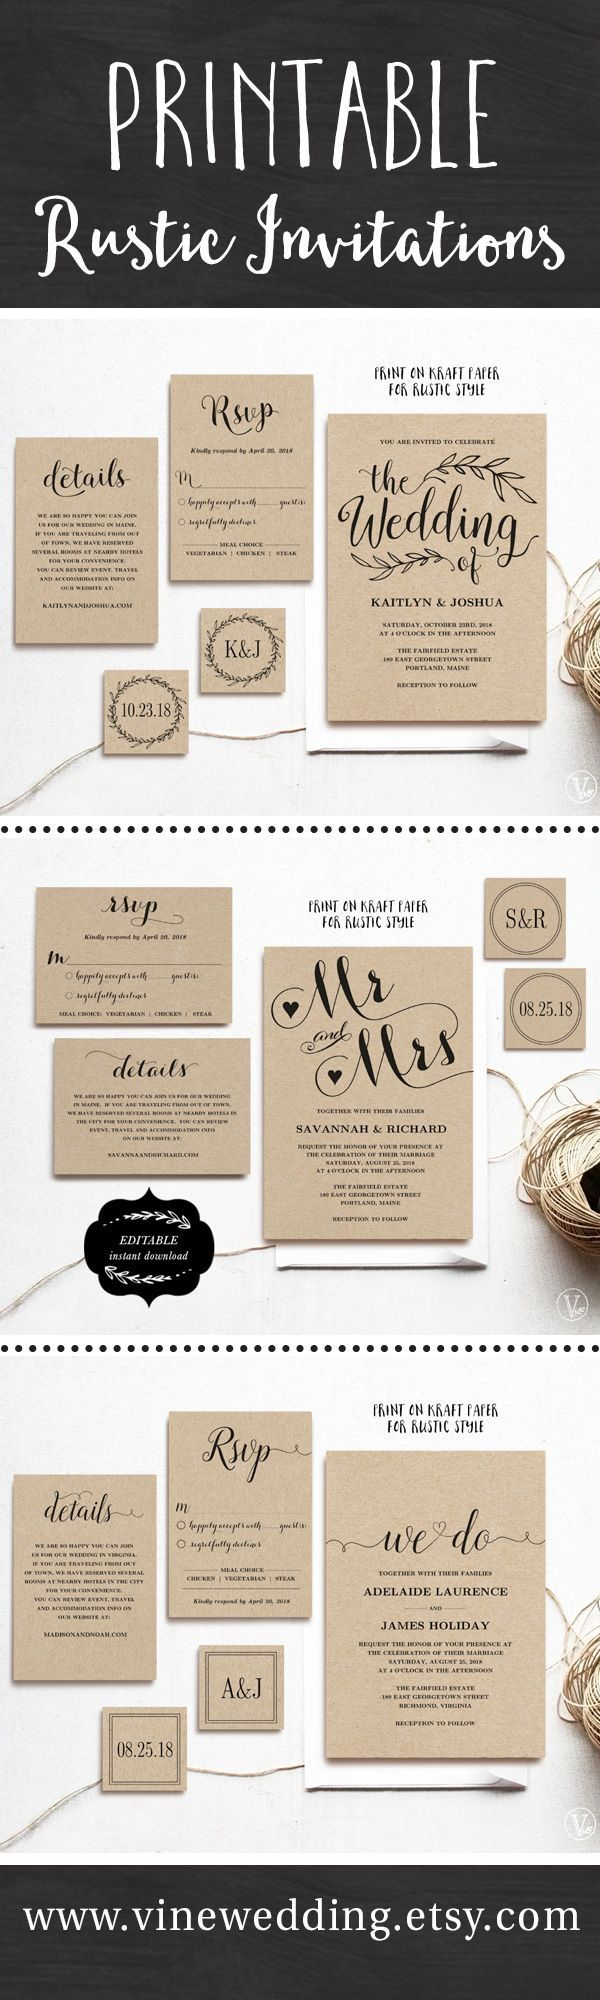 225 best Wedding Invitations images on Pinterest | Invitation cards ...